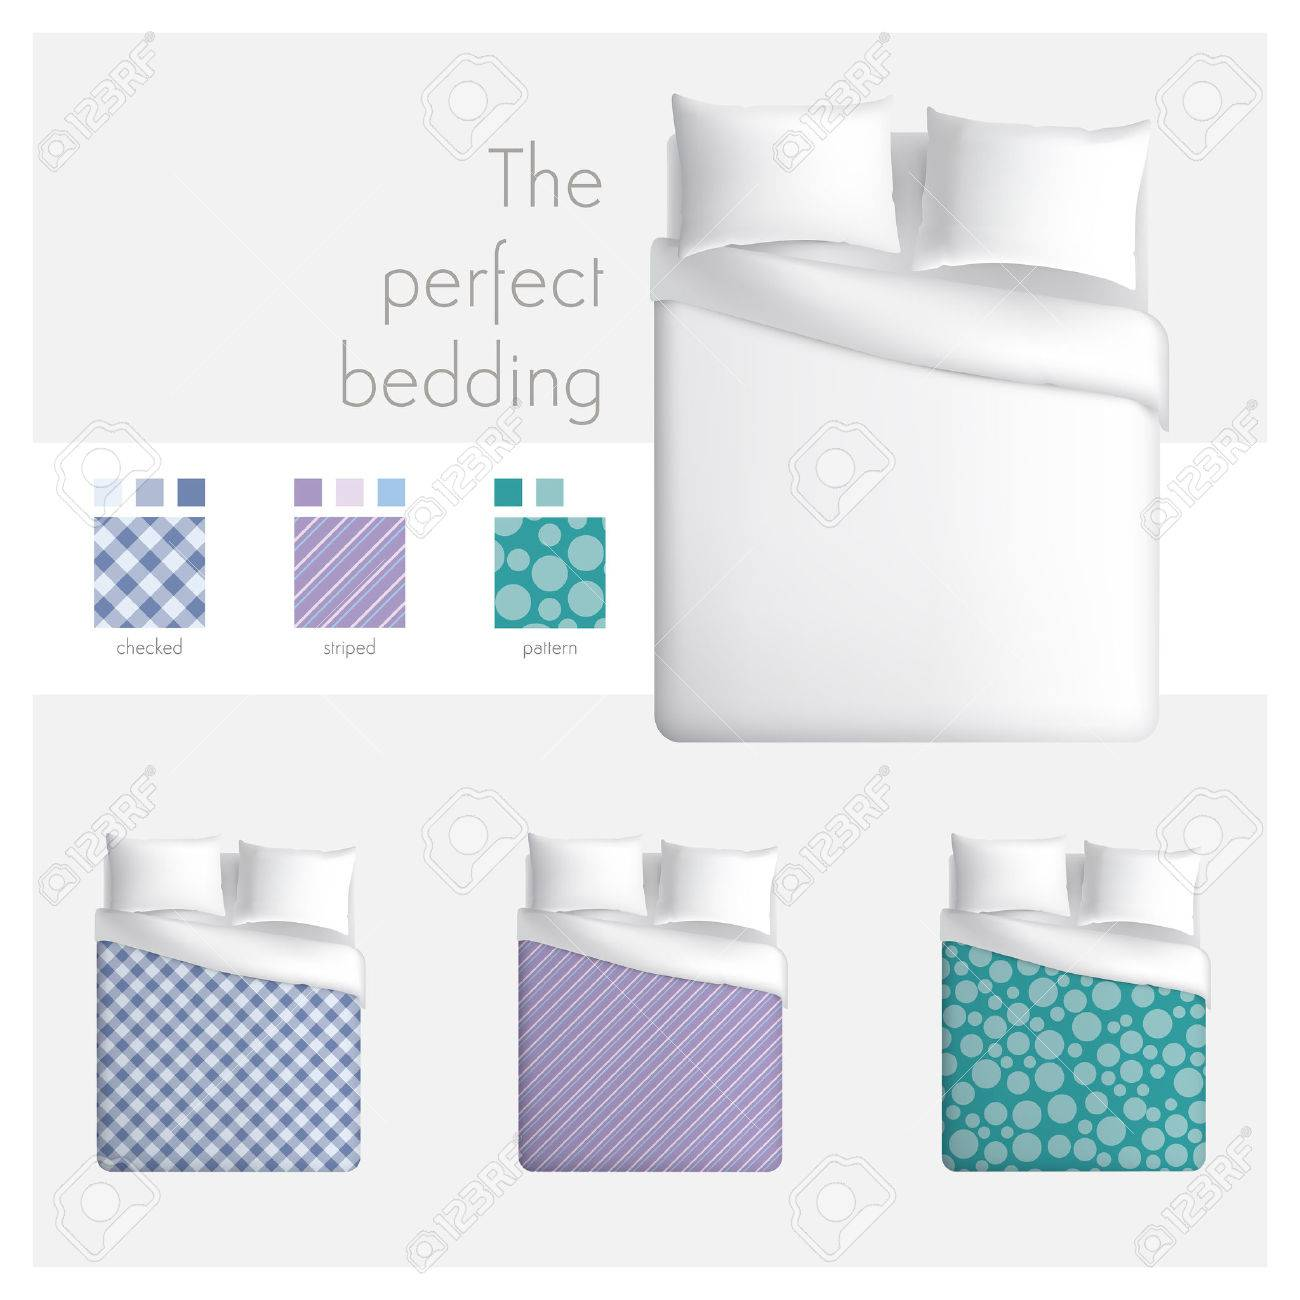 Bed Top View Furniture The Perfect Bedding Stock Vector In Inspiration